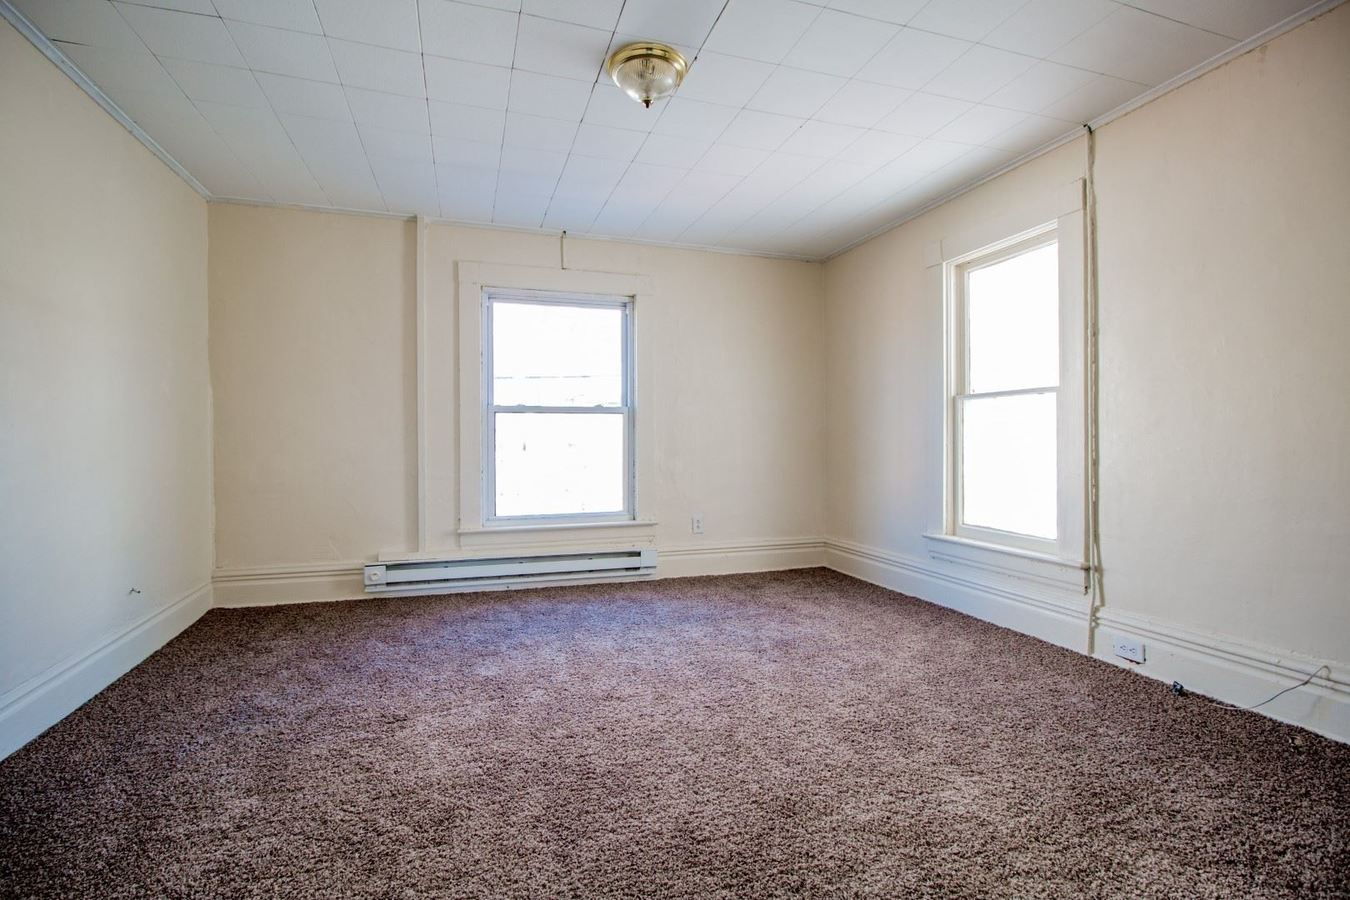 1 Bedroom 1 Bathroom Apartment for rent at 290 Wiles Street in Morgantown, WV